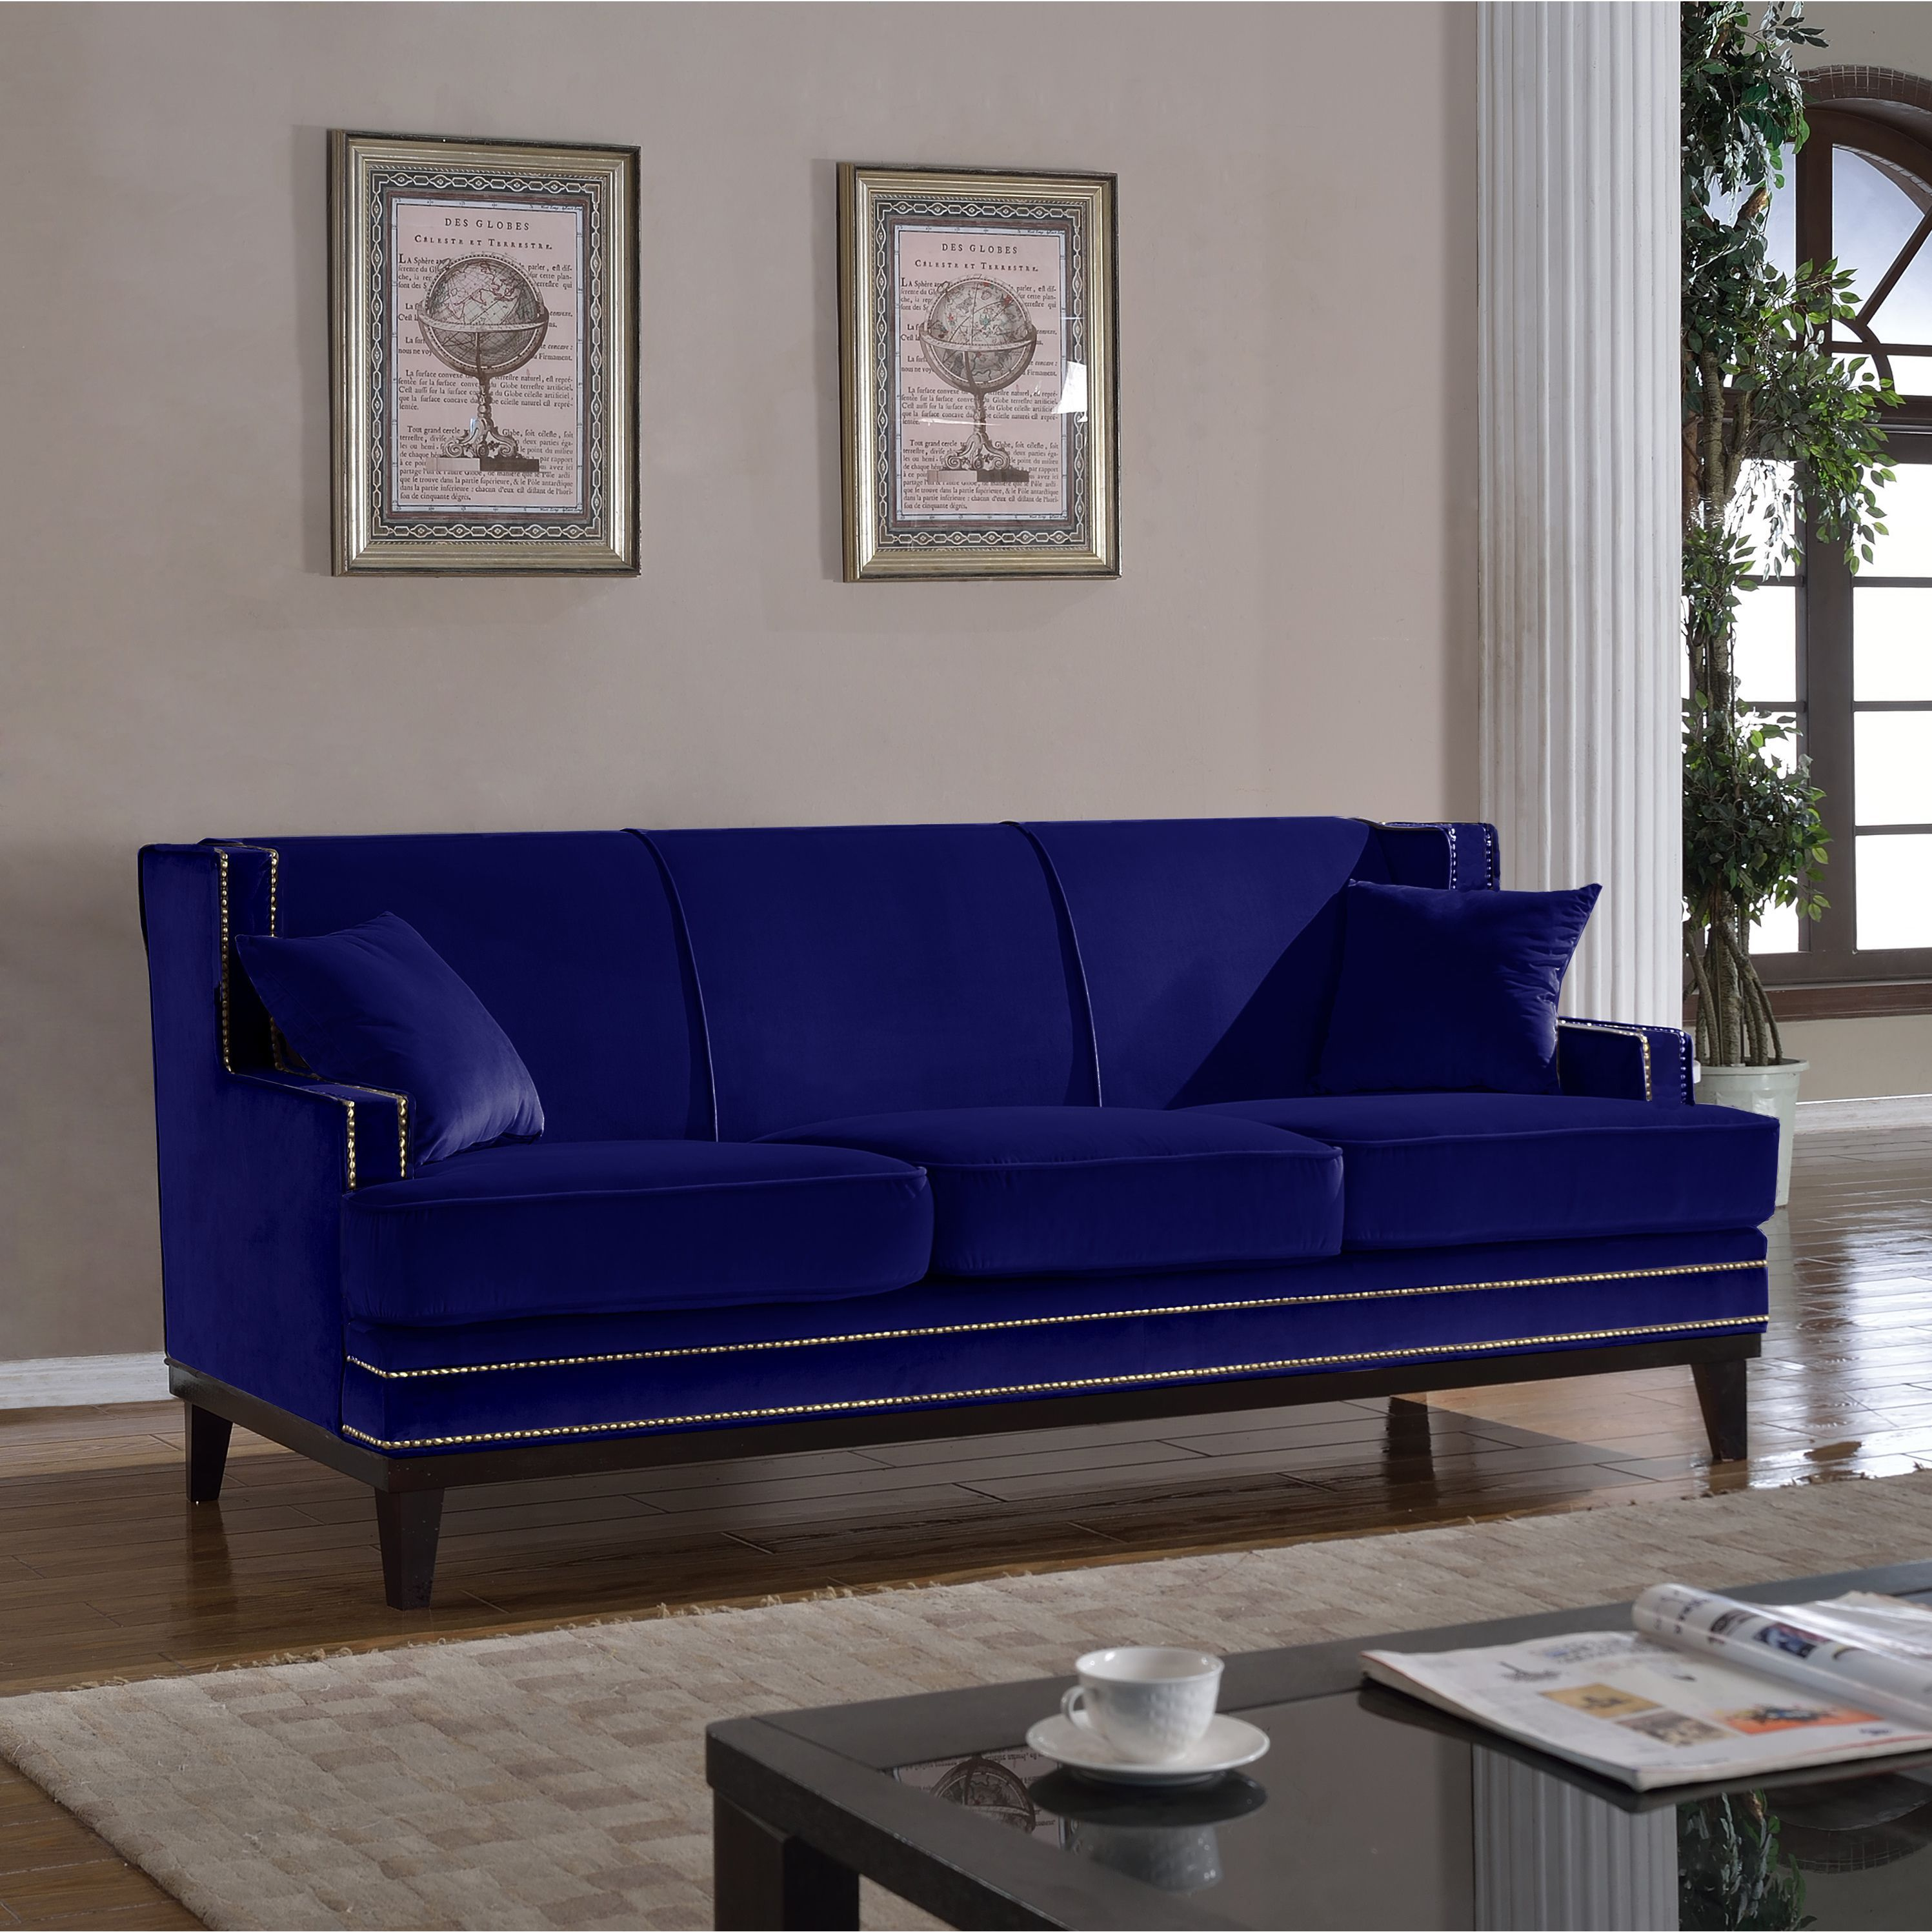 Beautiful And Elegantly Formal Sofa In Rich Colors With Gold Nailhead  Details Around Border. Sturdy Hardwood Build With Dark Wooden Legs And 2  Matching ...